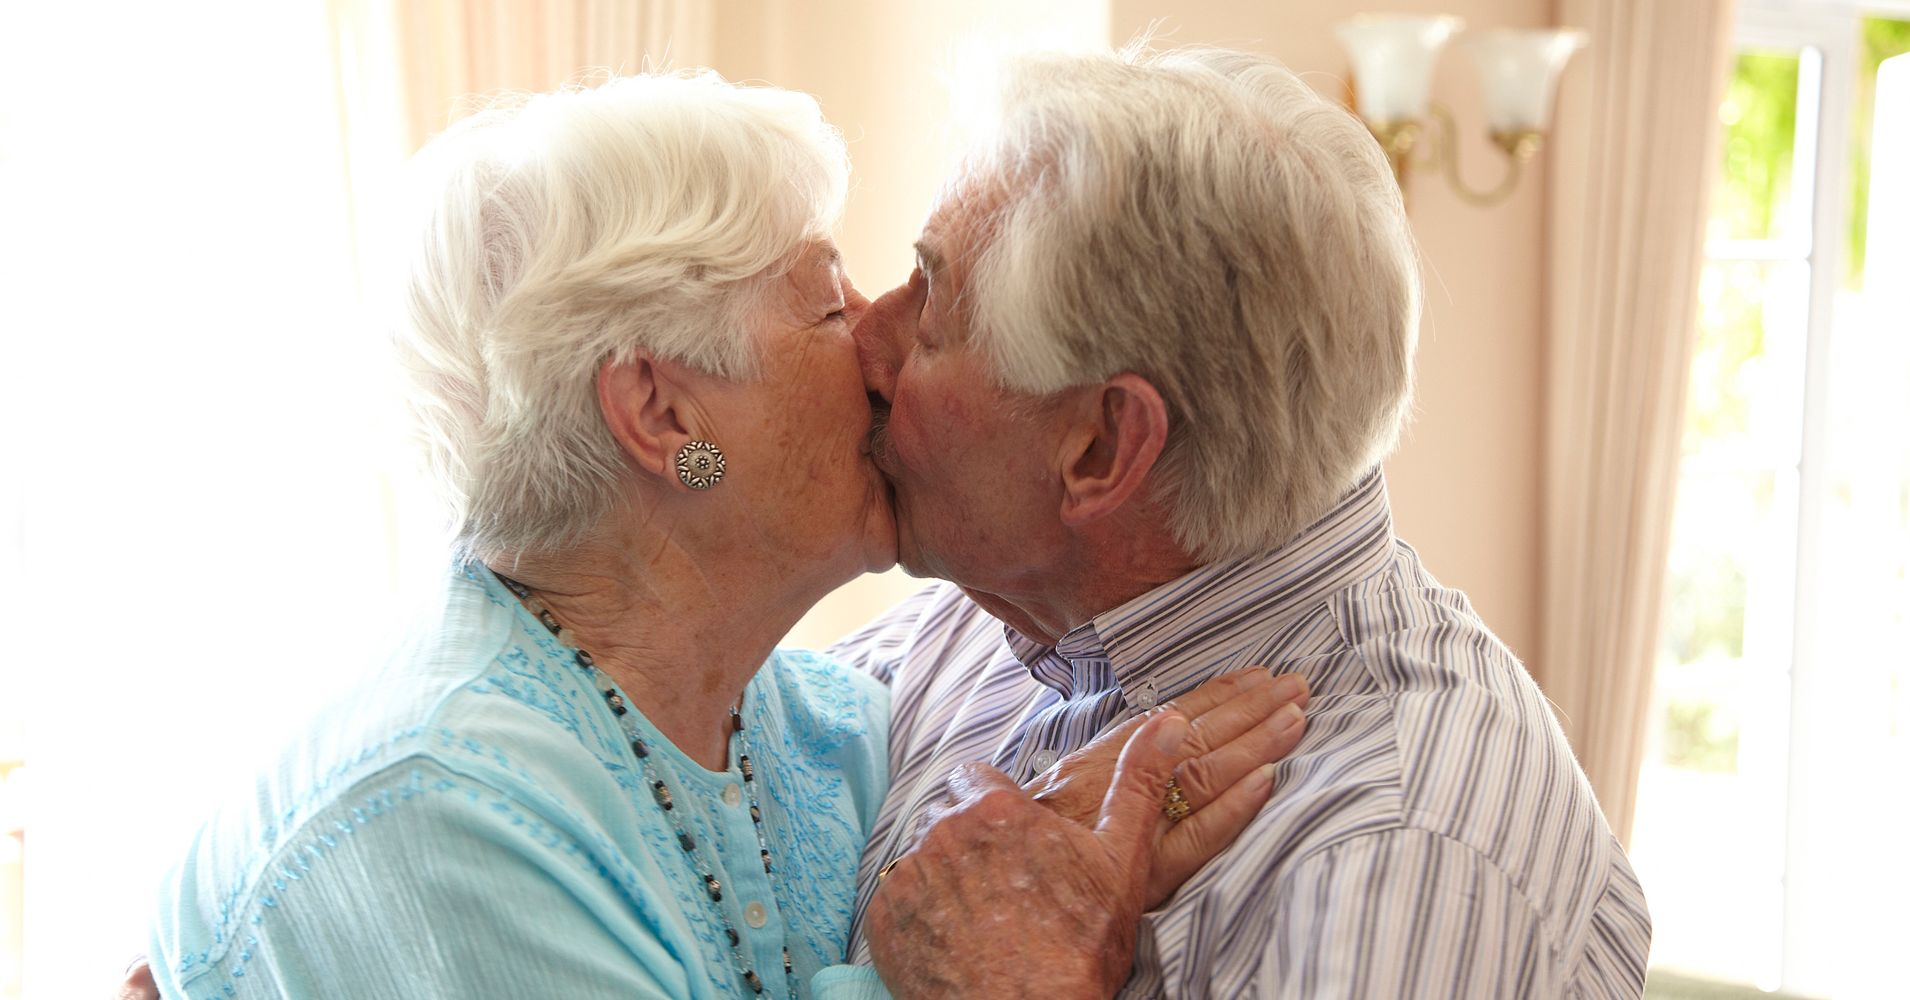 sexual activity among the elderly